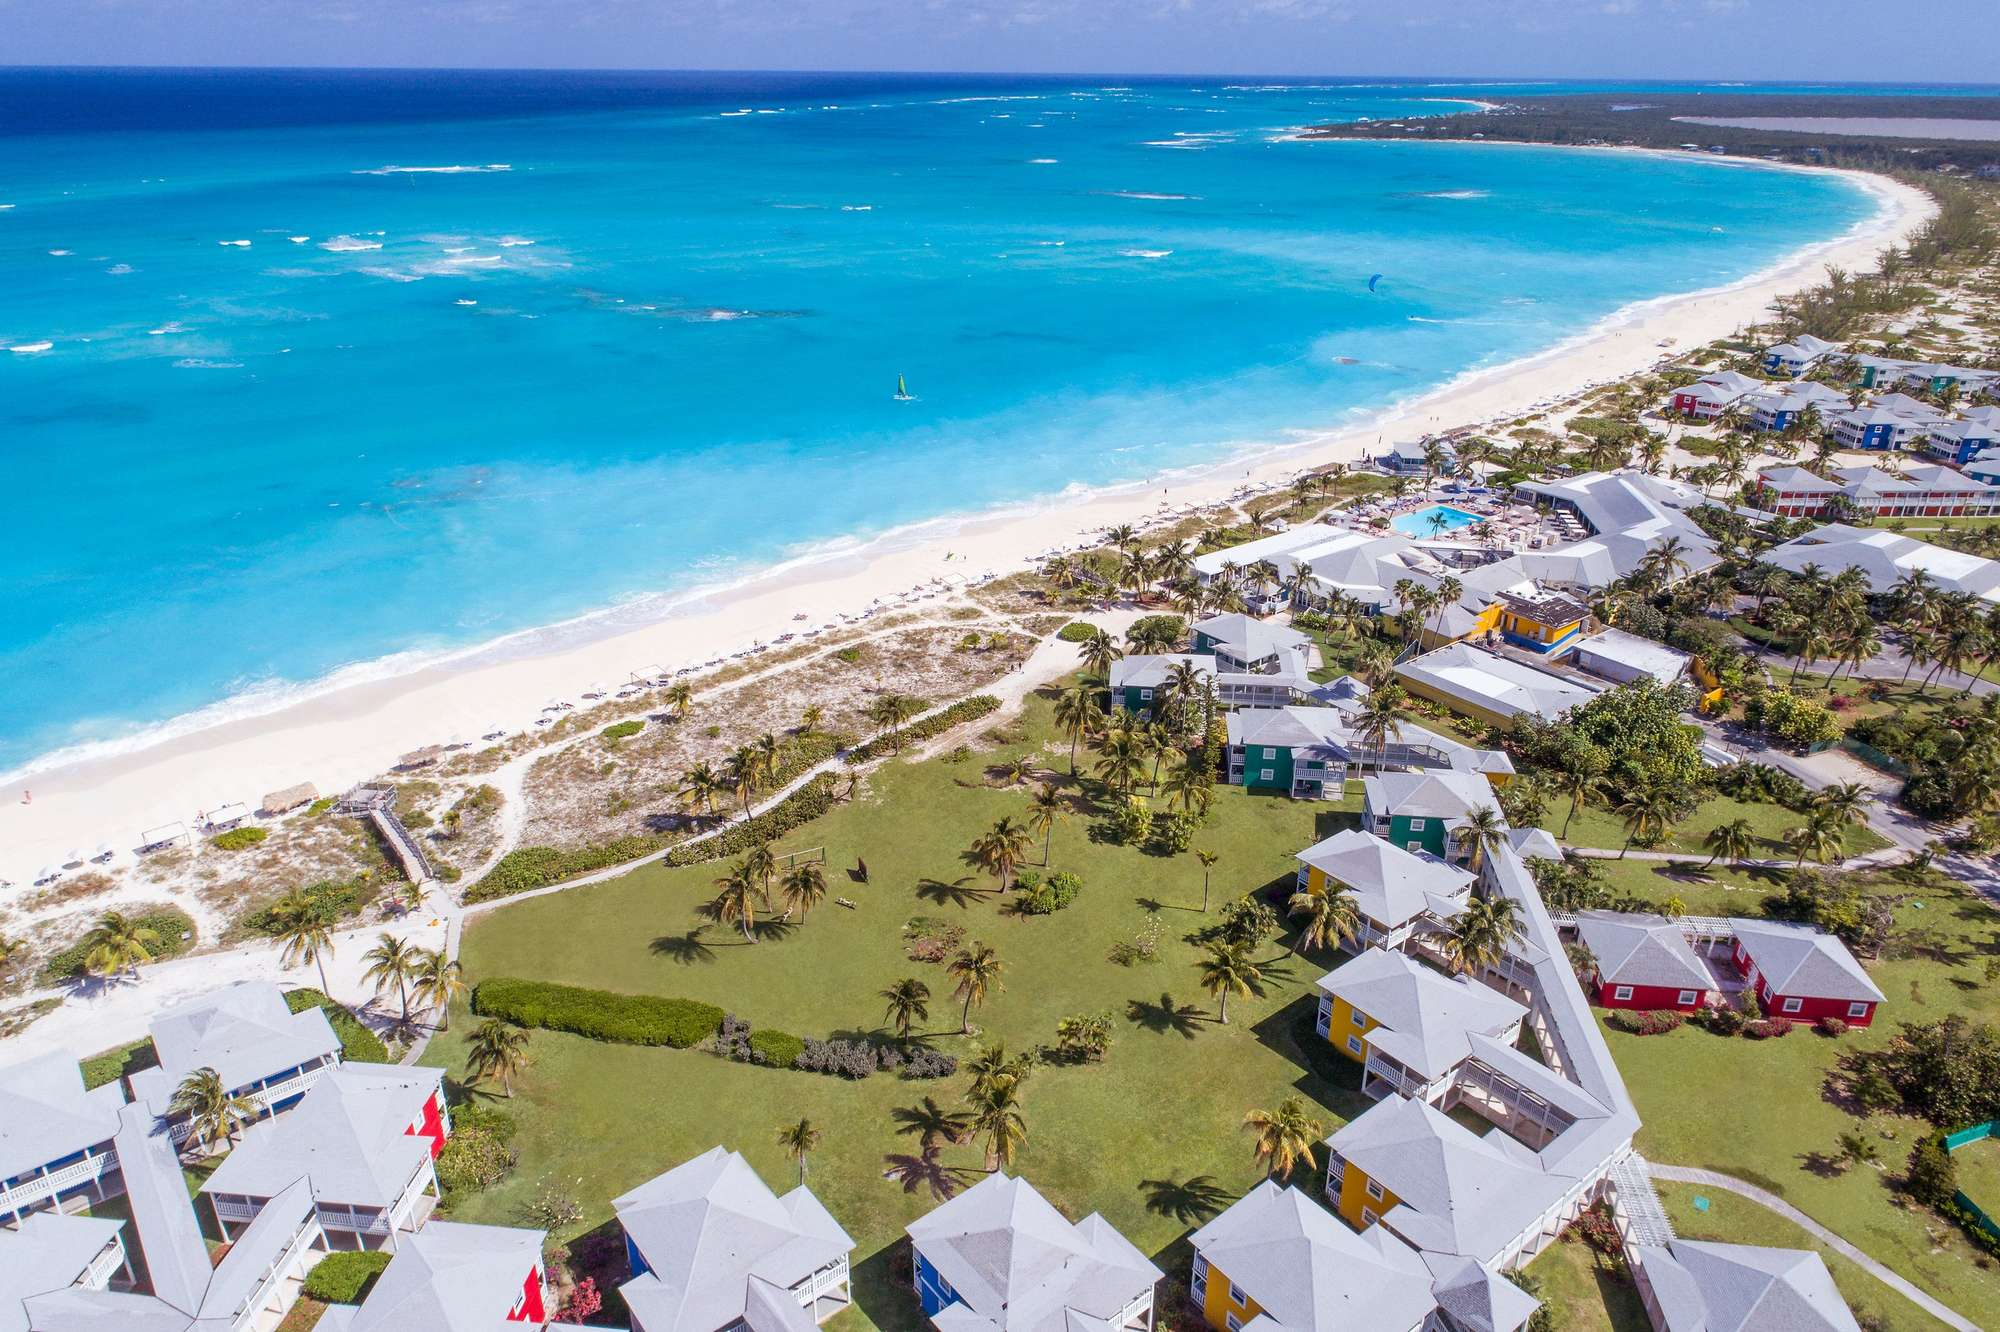 Columbus Isle, The Bahamas - The remote island of San Salvador in the Bahamas is the home of Club Med Columbus Isle, an all-inclusive resort featuring world-class scuba diving, sugar-white-sand beaches, and excellent amenities. This hidden gem is perfect for a romantic couple's escape!